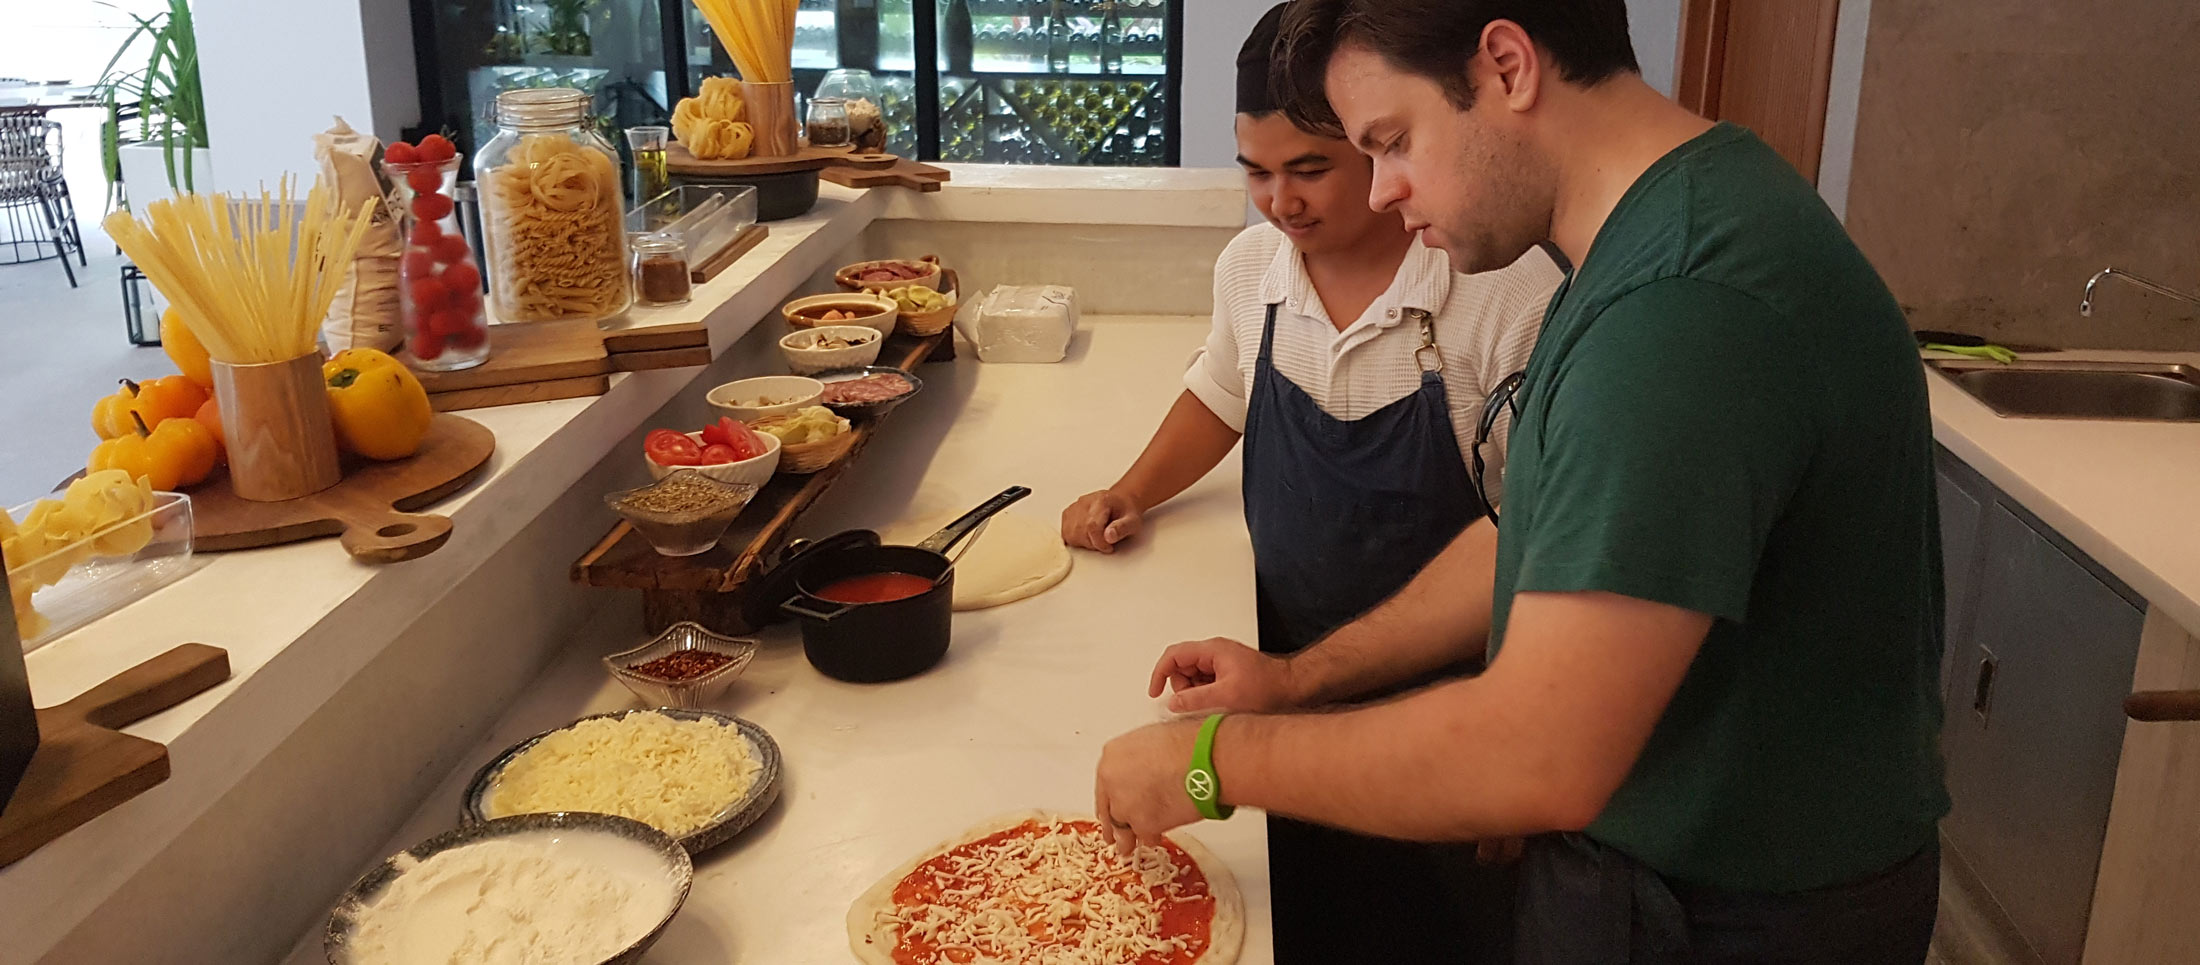 cooking class, pizza making class